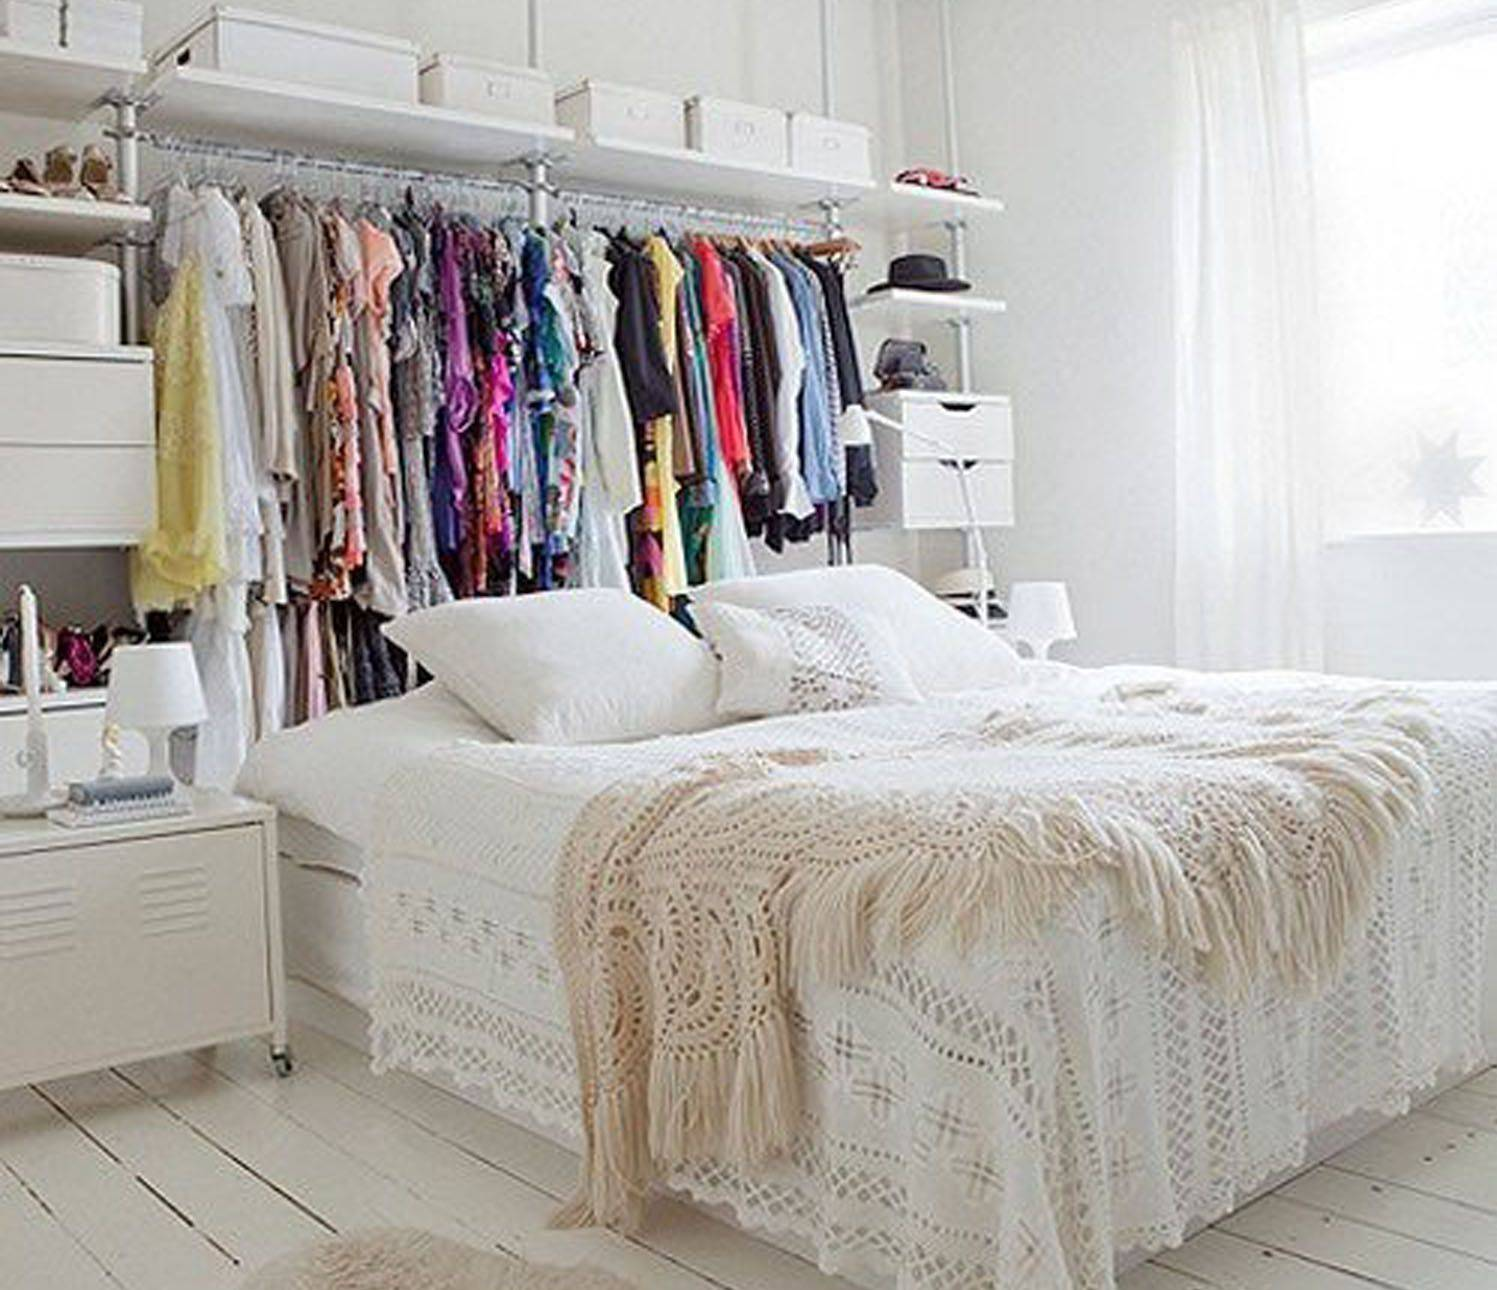 Clothes storage behind the bed 56a f9b58b7d0e60ee6